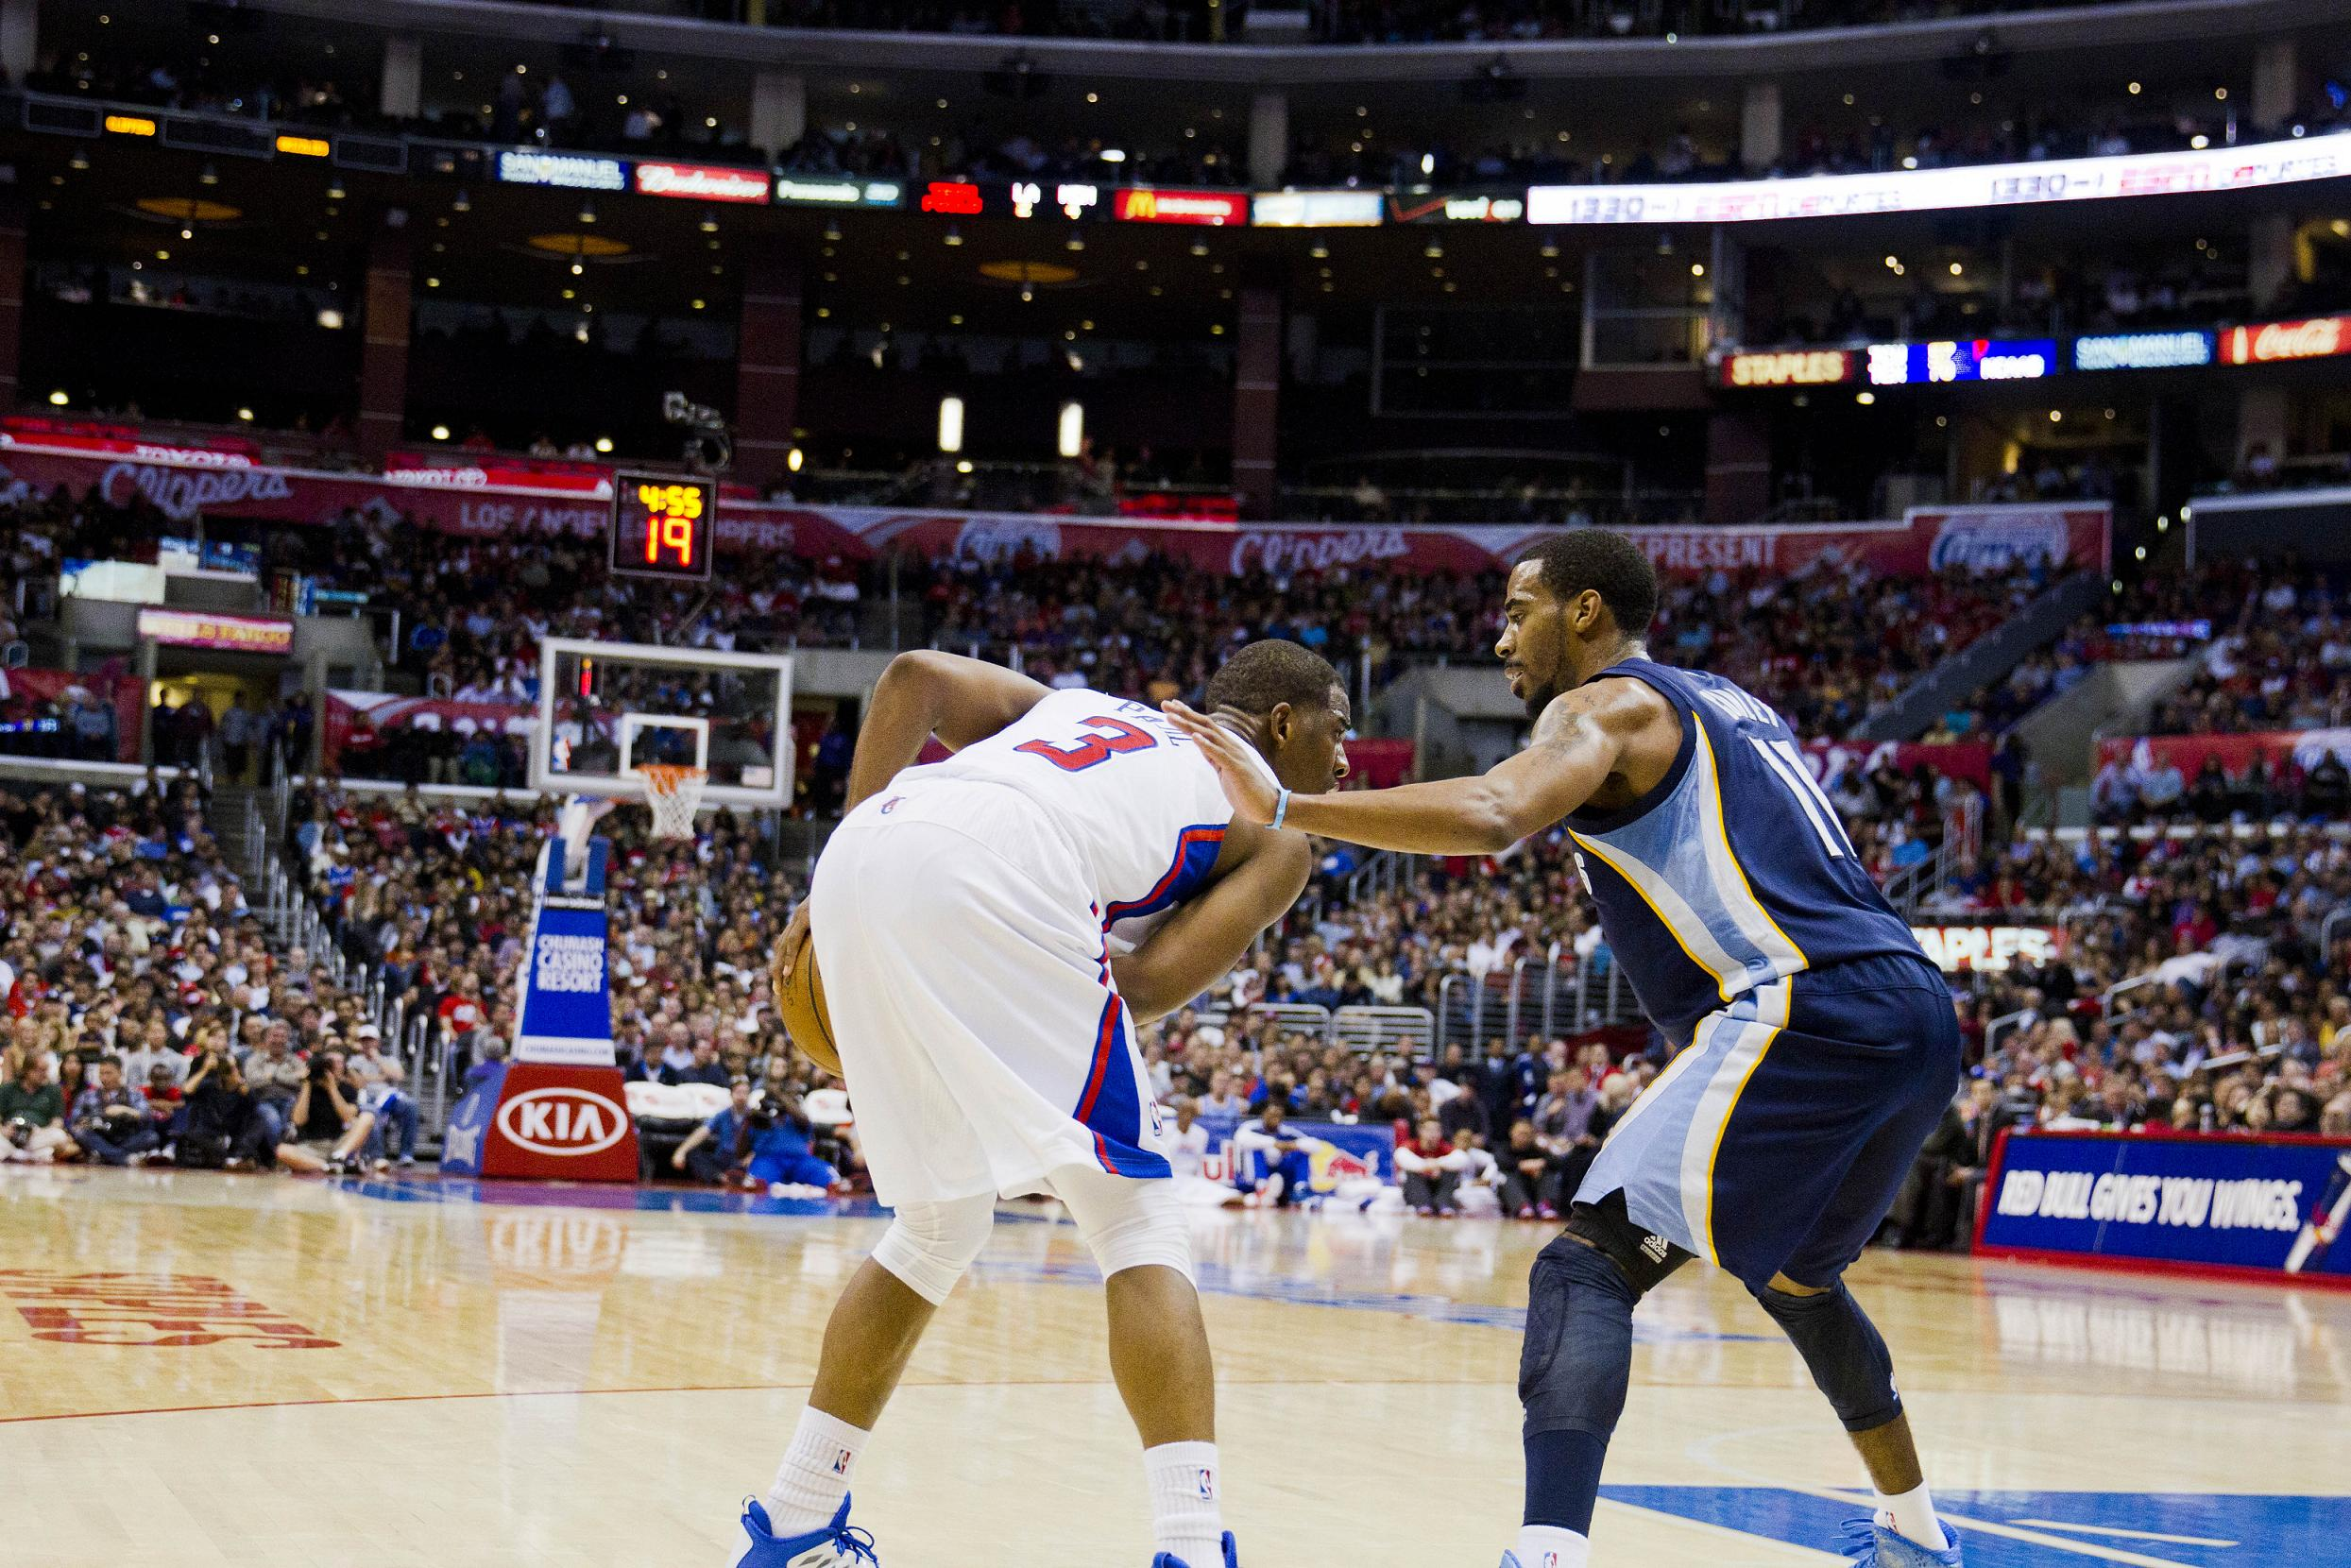 Clippers Sends Message to Grizzlies